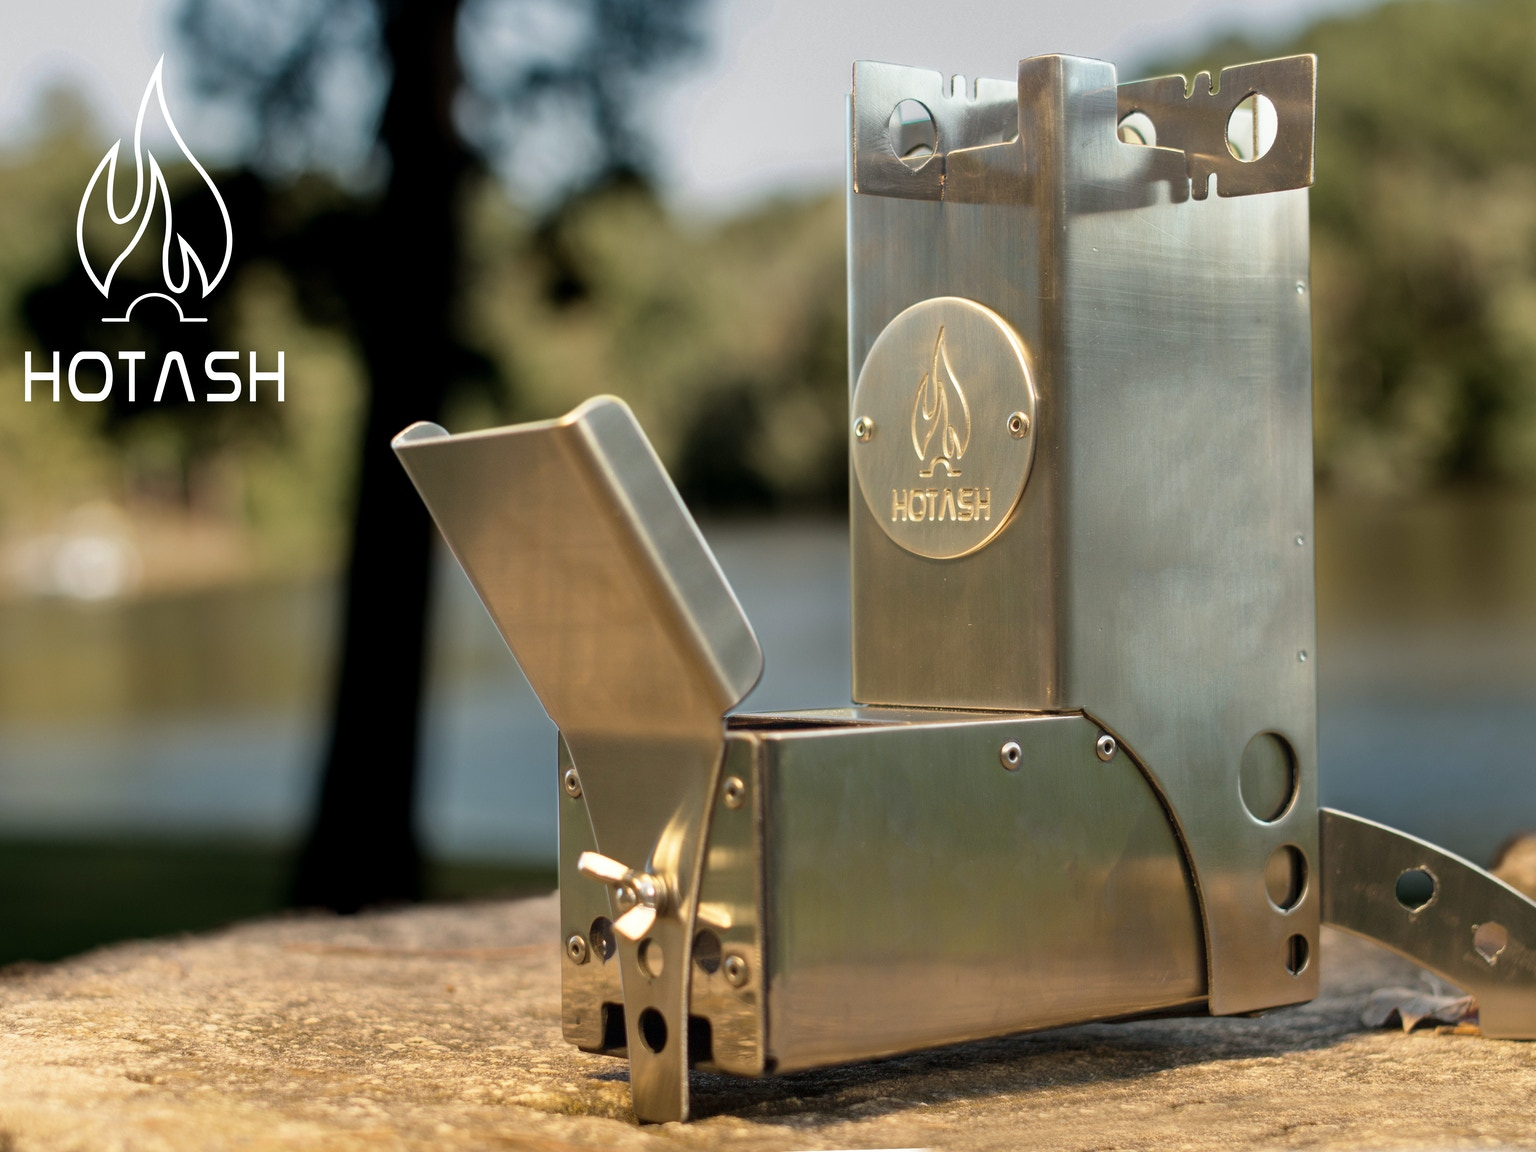 hot ash camping gear wood burning rocket stove by hot ash